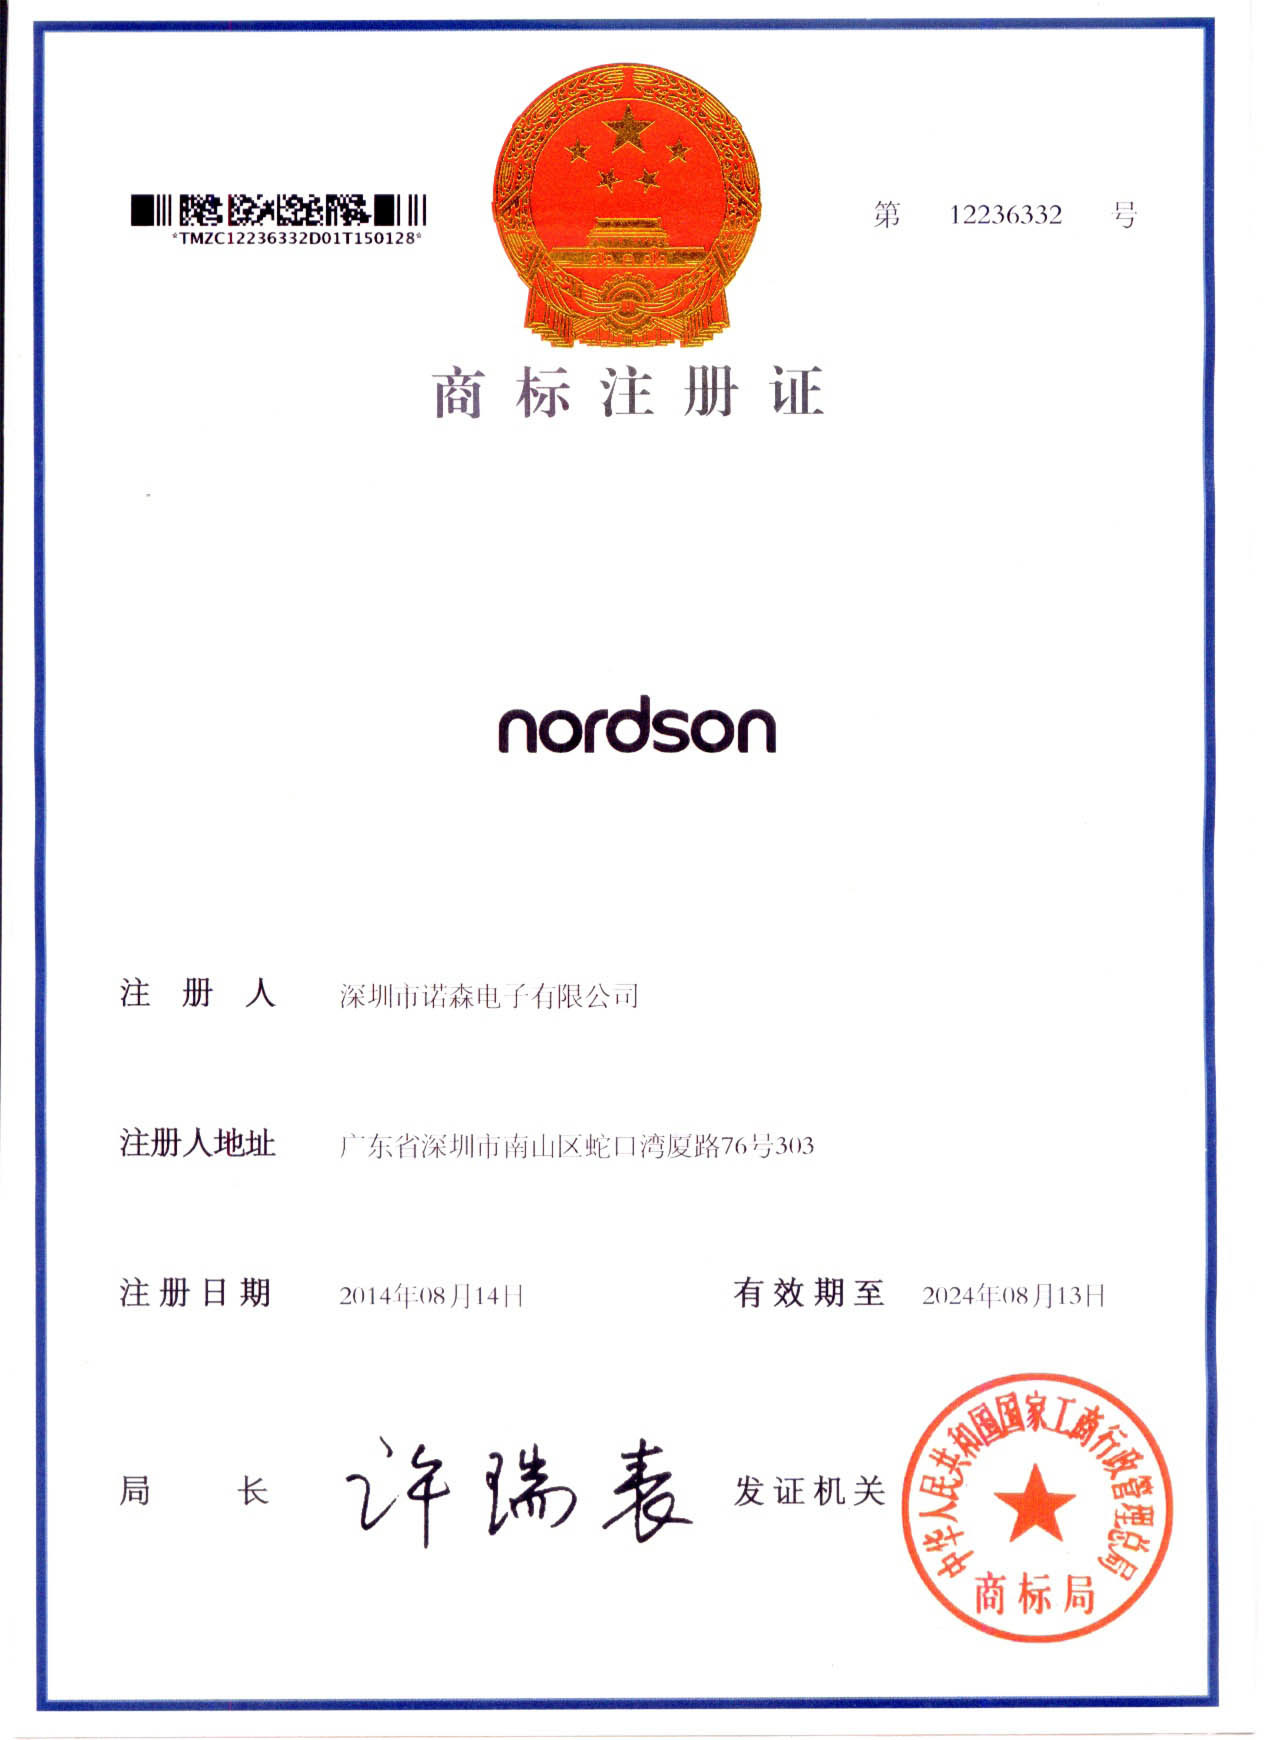 Nordson Registered Trademark